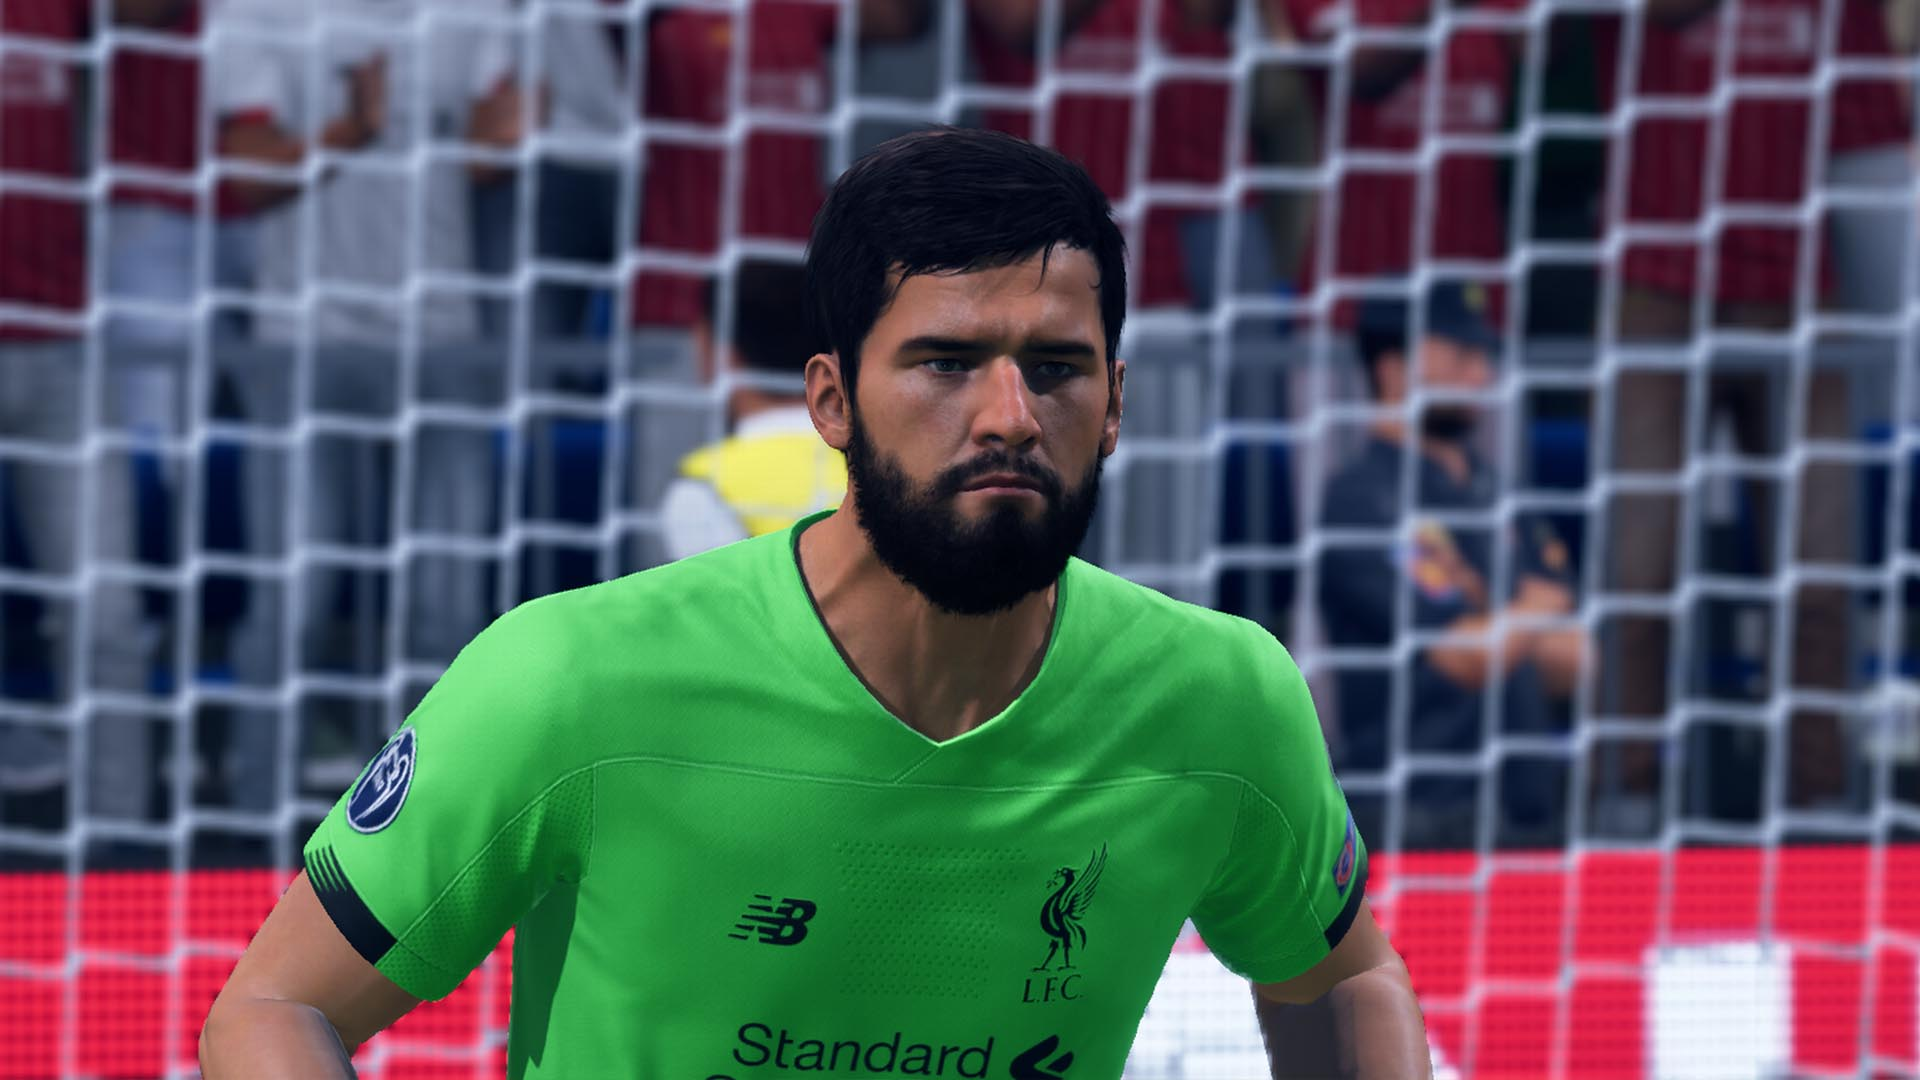 FIFA 21: Ratings for the top 10 Premier League players have been predicted - Bóng Đá